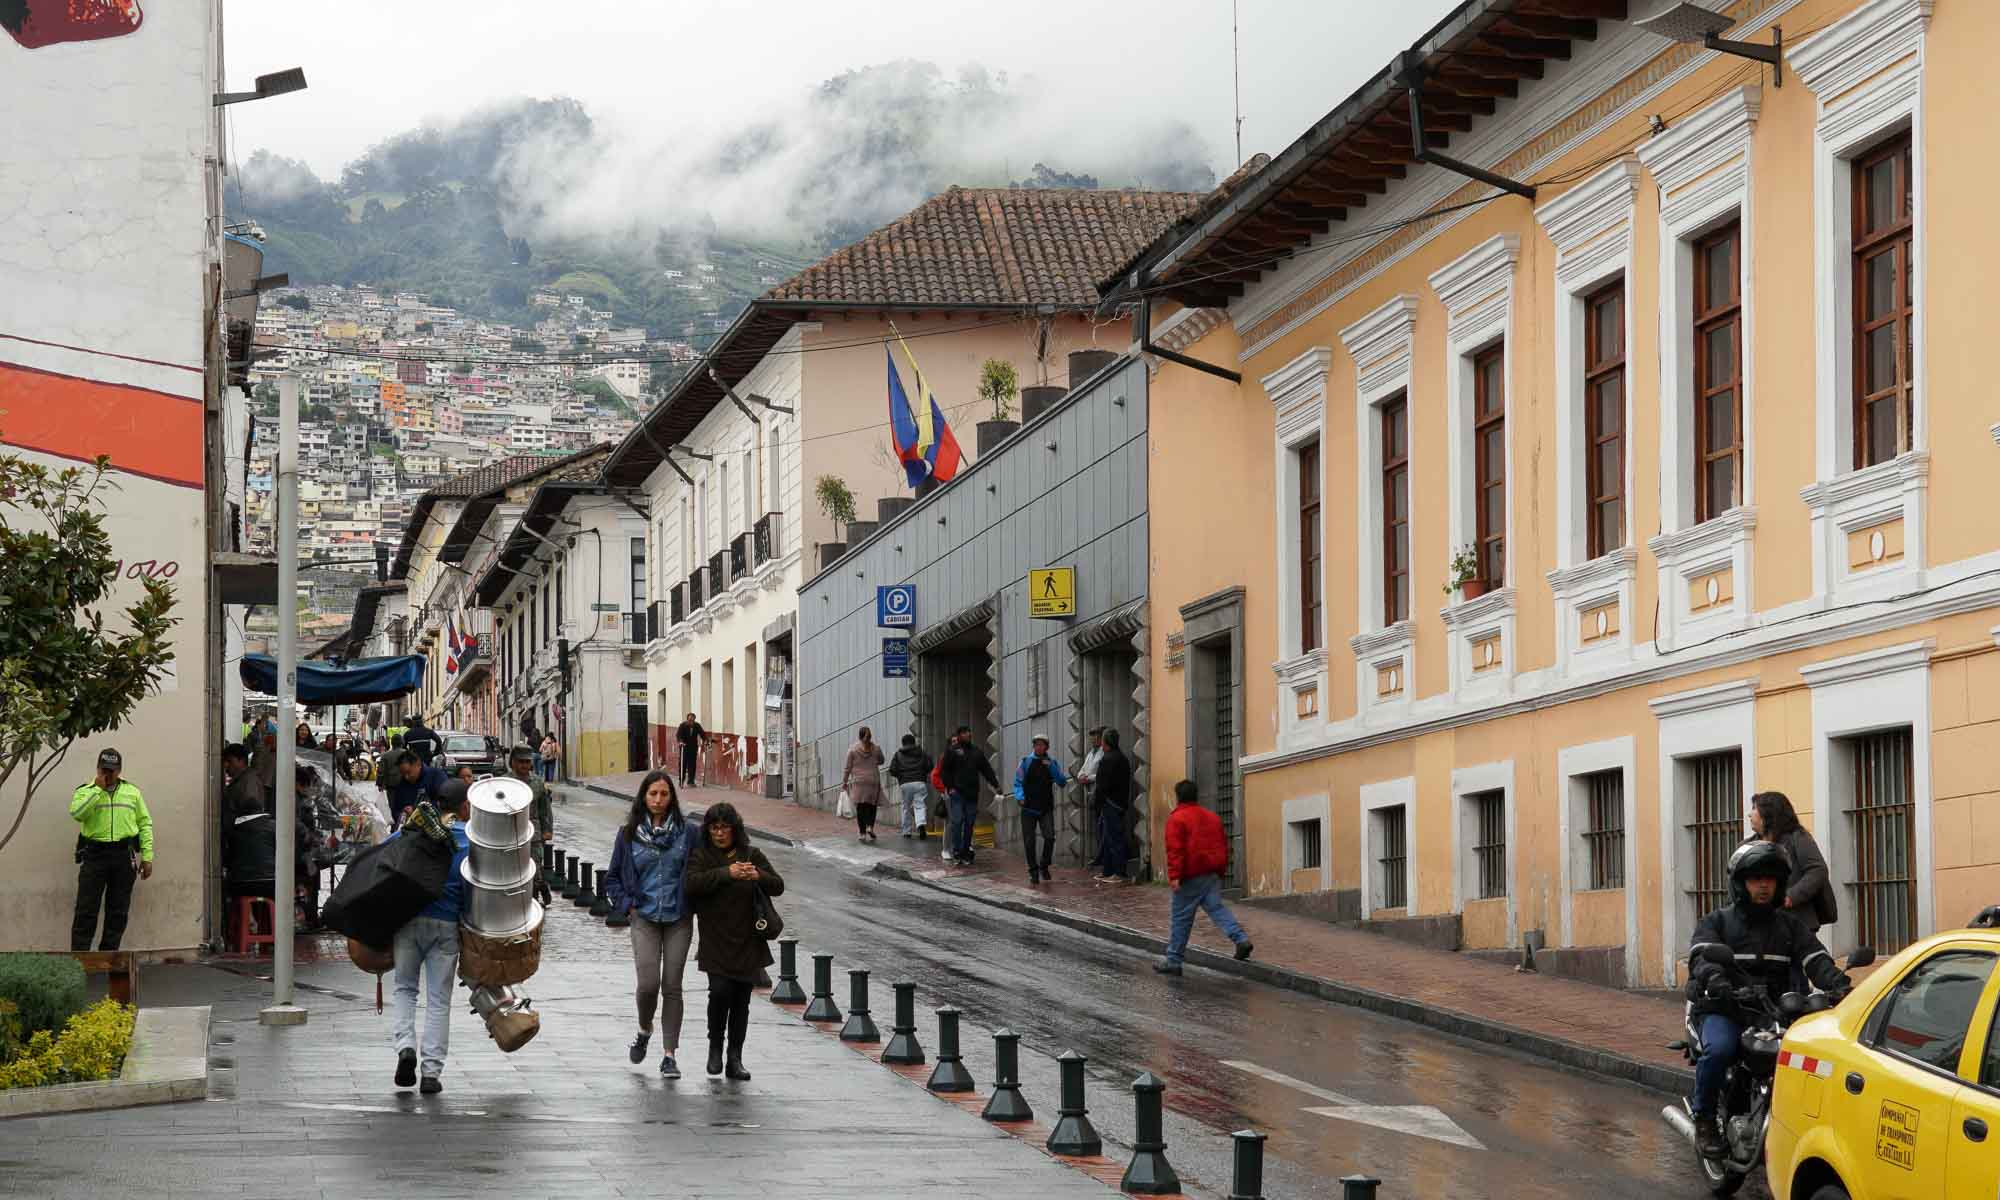 A rainy day in Quito